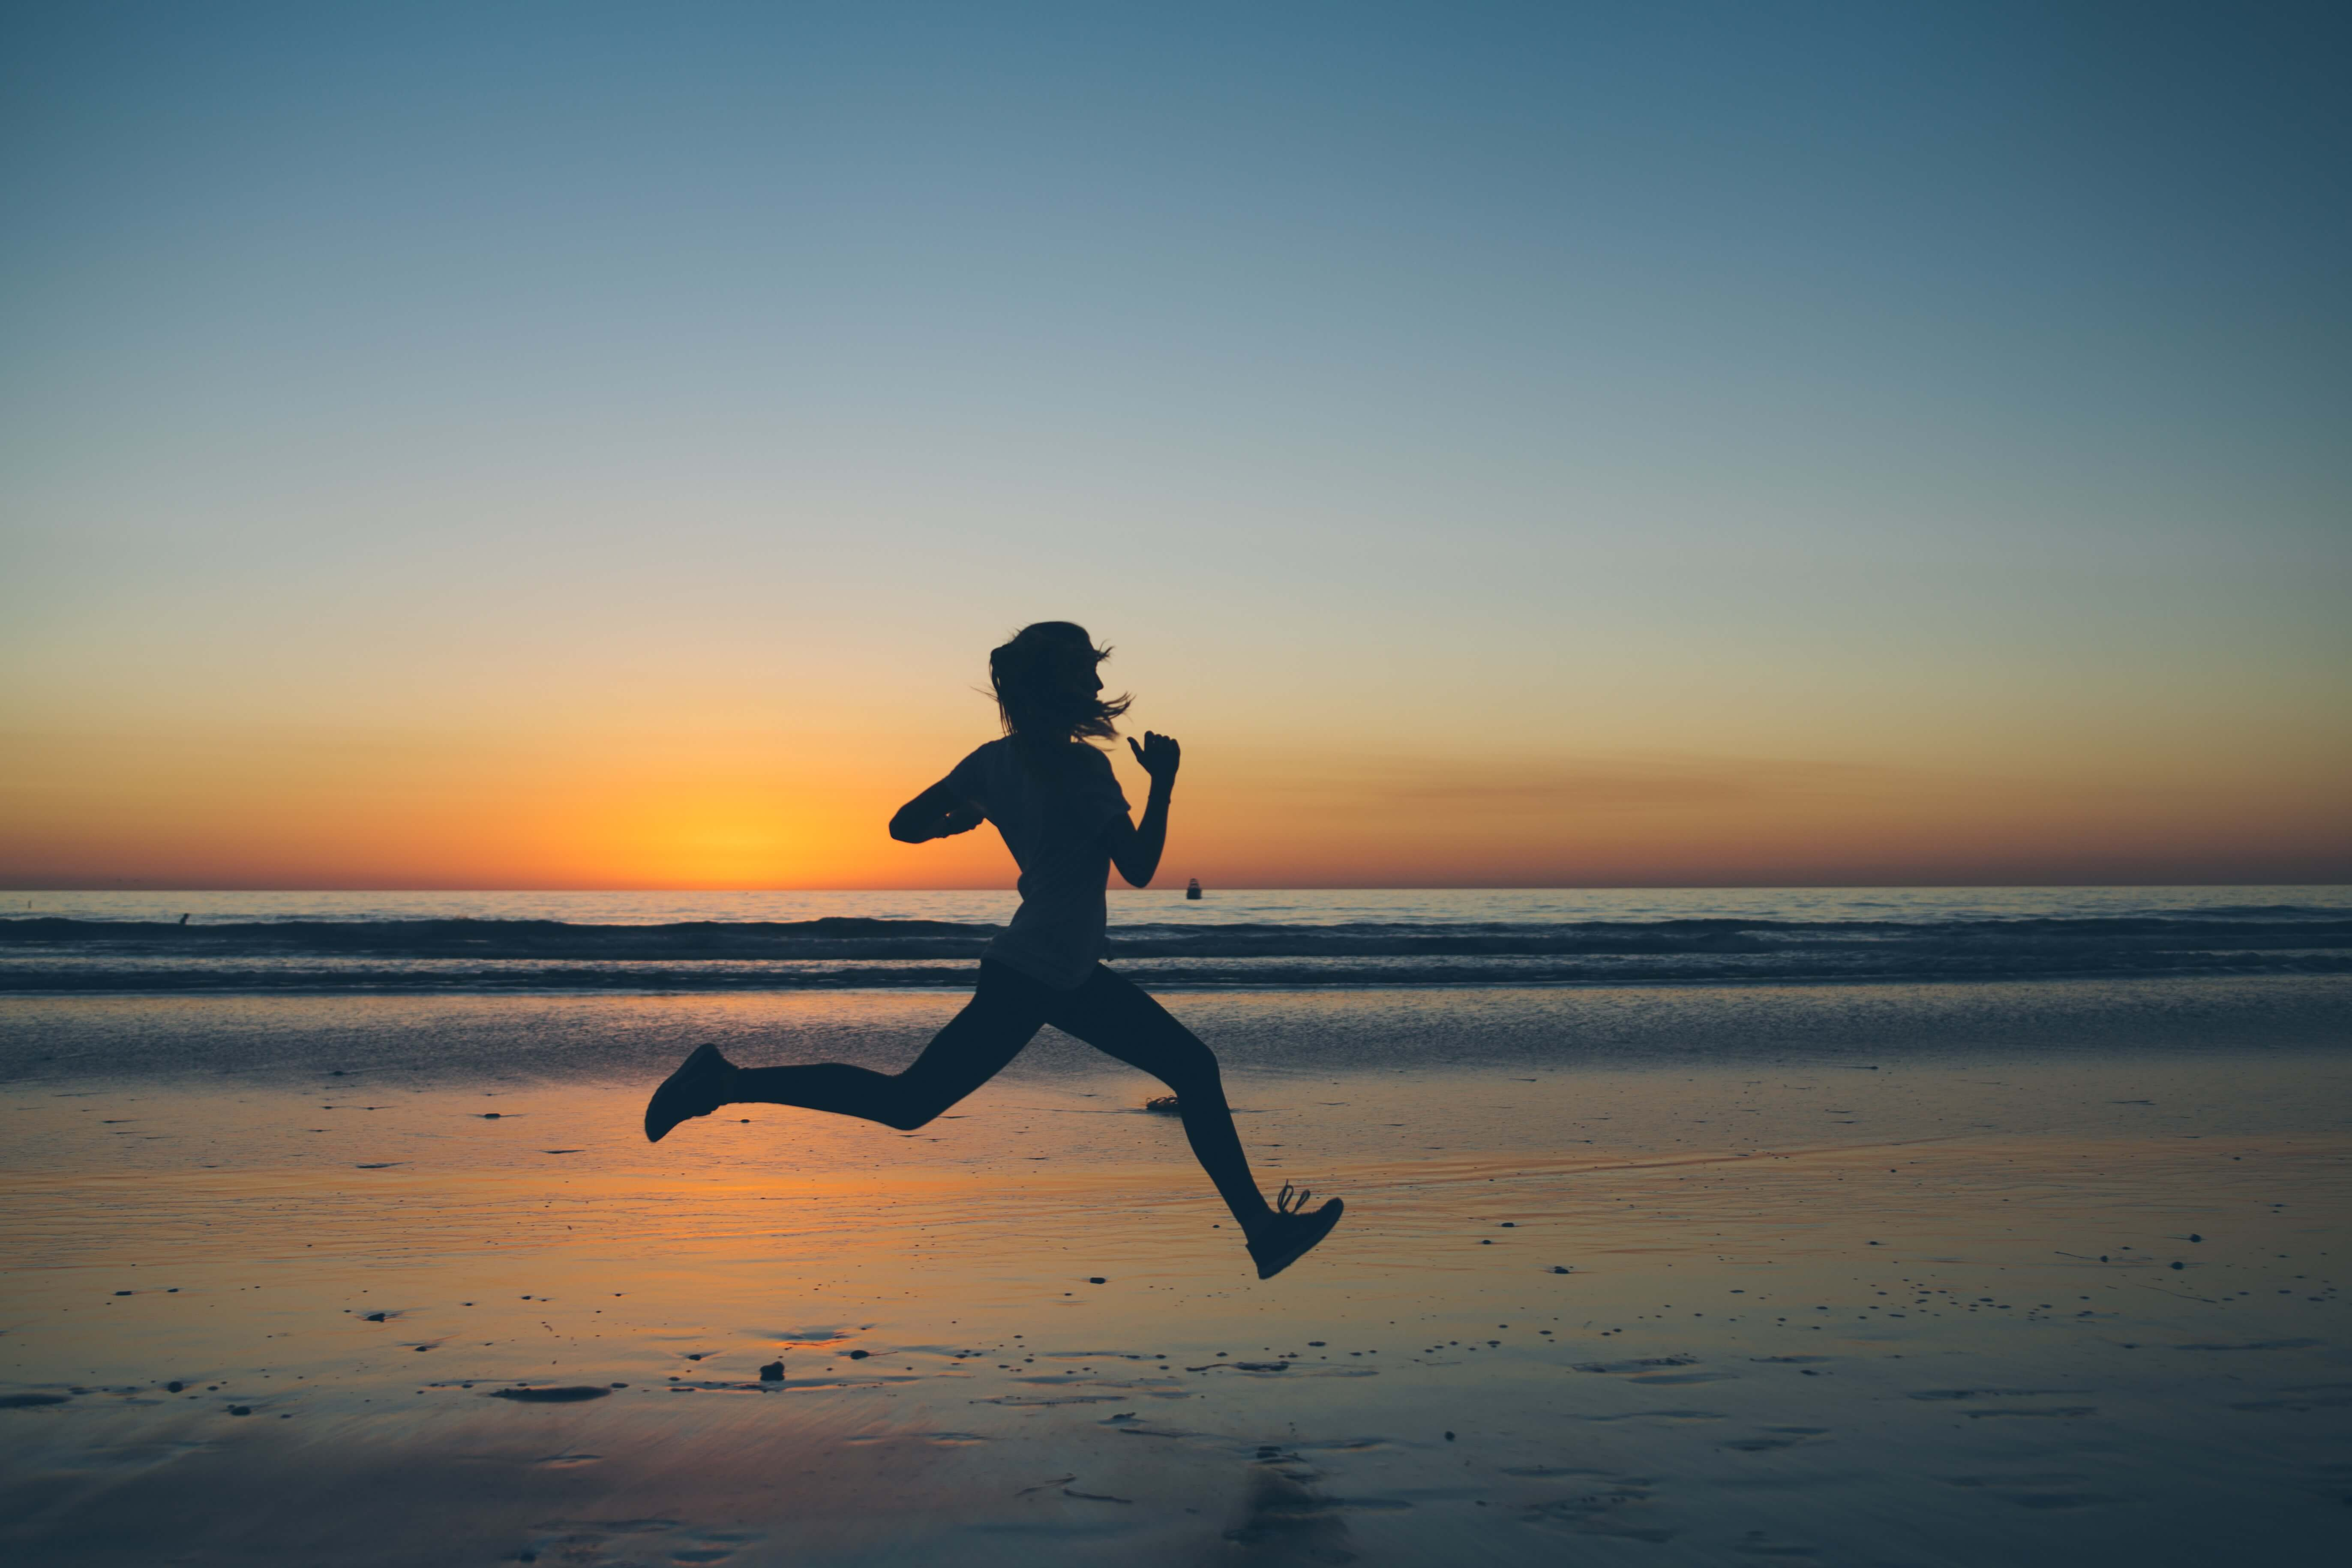 A runner on the beach at sunset